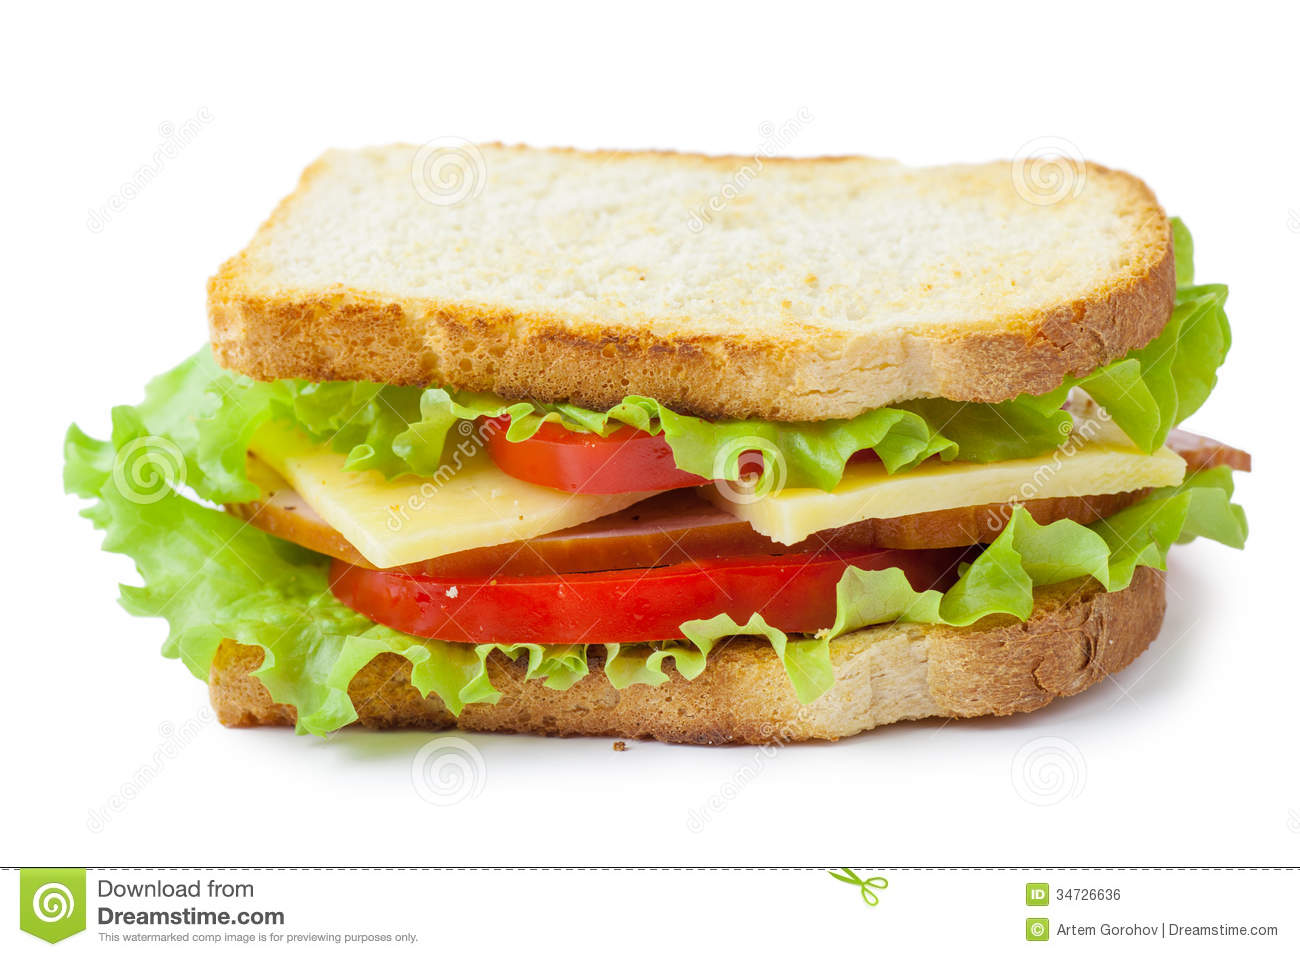 sandwich divorced singles A gastric band can lead to divorce  relationships shot up for single people  an article about animal welfare while eating a bacon sandwich.